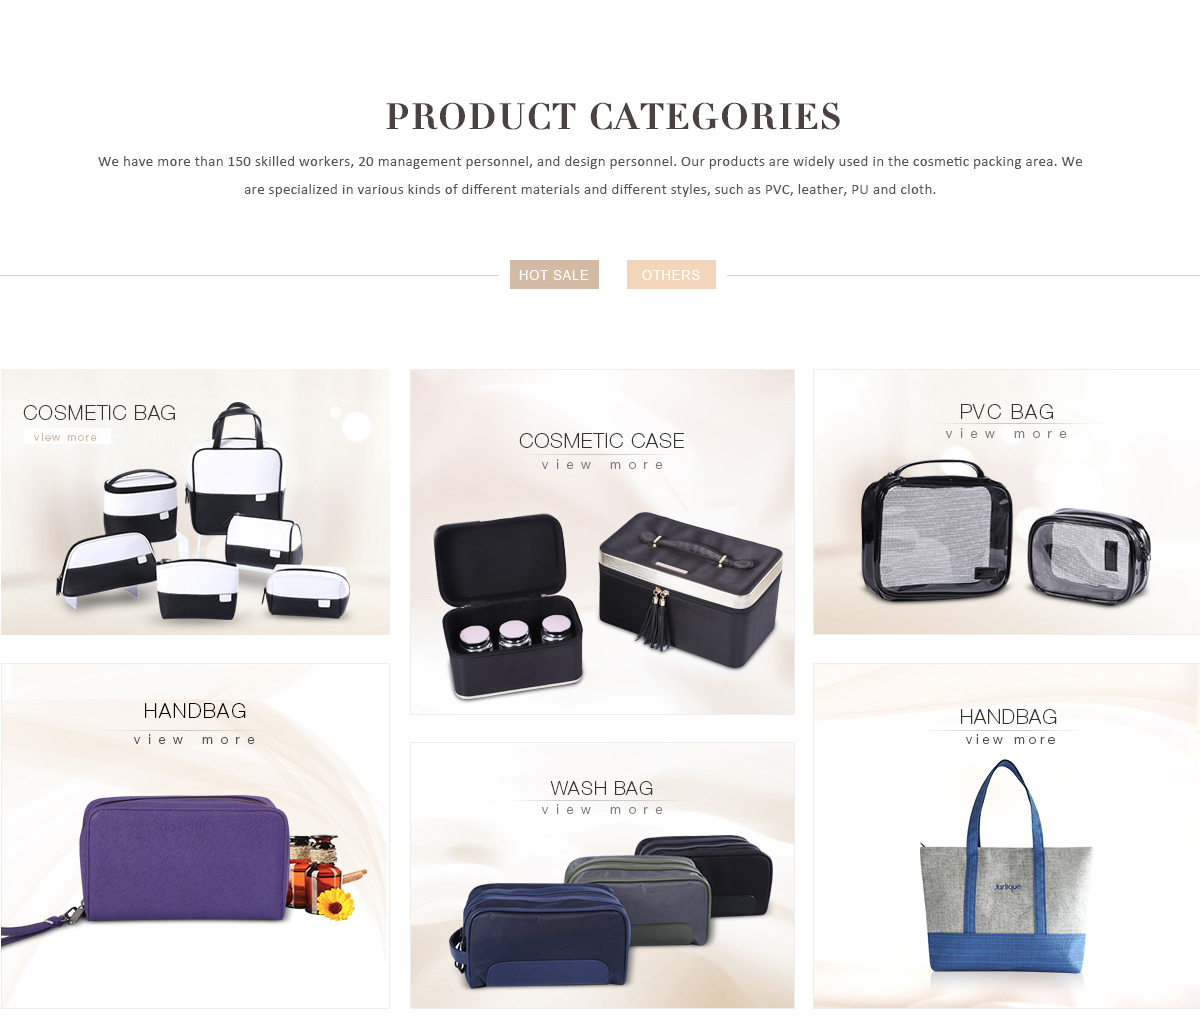 c7e4f714a63 Guangzhou Yumei Leather Co., Ltd. - Cosmetic Bags & Cases (Cosmetic ...